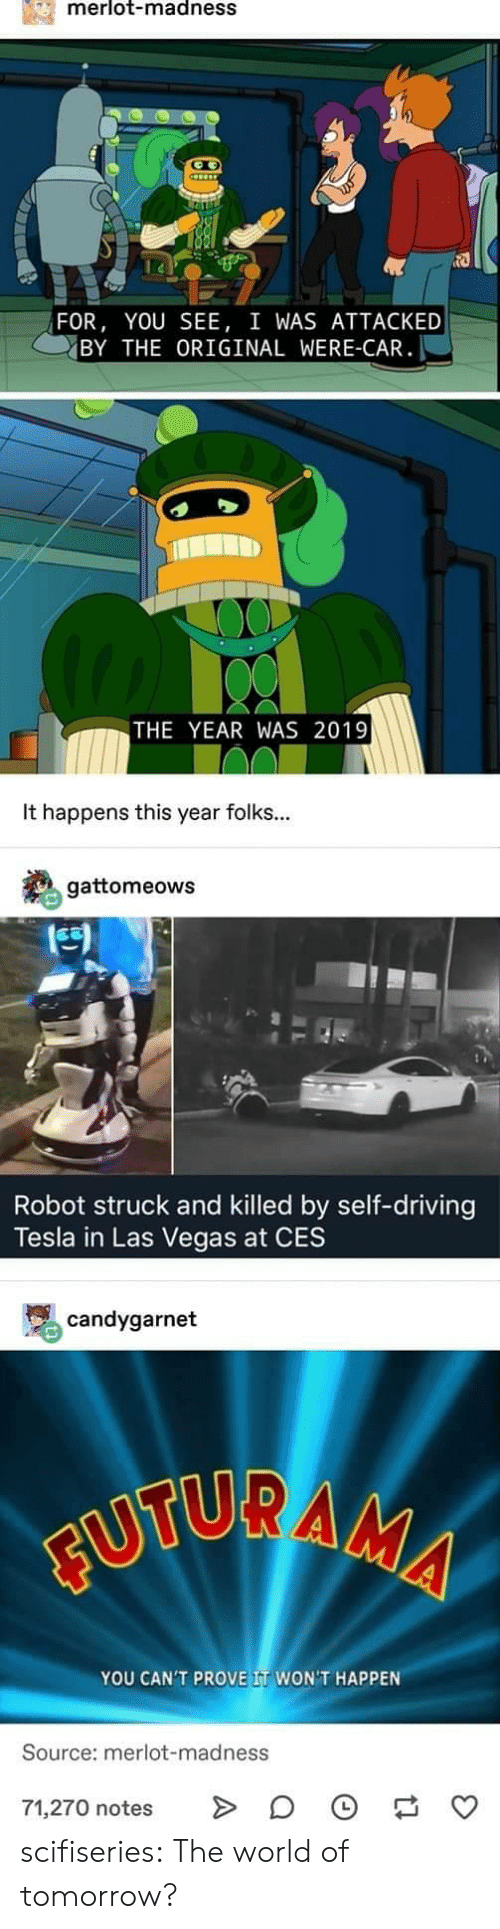 ces: merlot-madnesS  FOR, YOU SEE, I WAS ATTACKED  BY THE ORIGINAL WERE-CAR  THE YEAR WAS 2019  It happens this year folks...  gattomeows  凹  Robot struck and killed by self-driving  Tesla in Las Vegas at CES  骂candygarnet  YOU CAN'T PROVE IT WON'T HAPPEN  Source: merlot-madness  71,270 notes > 。 scifiseries:  The world of tomorrow?